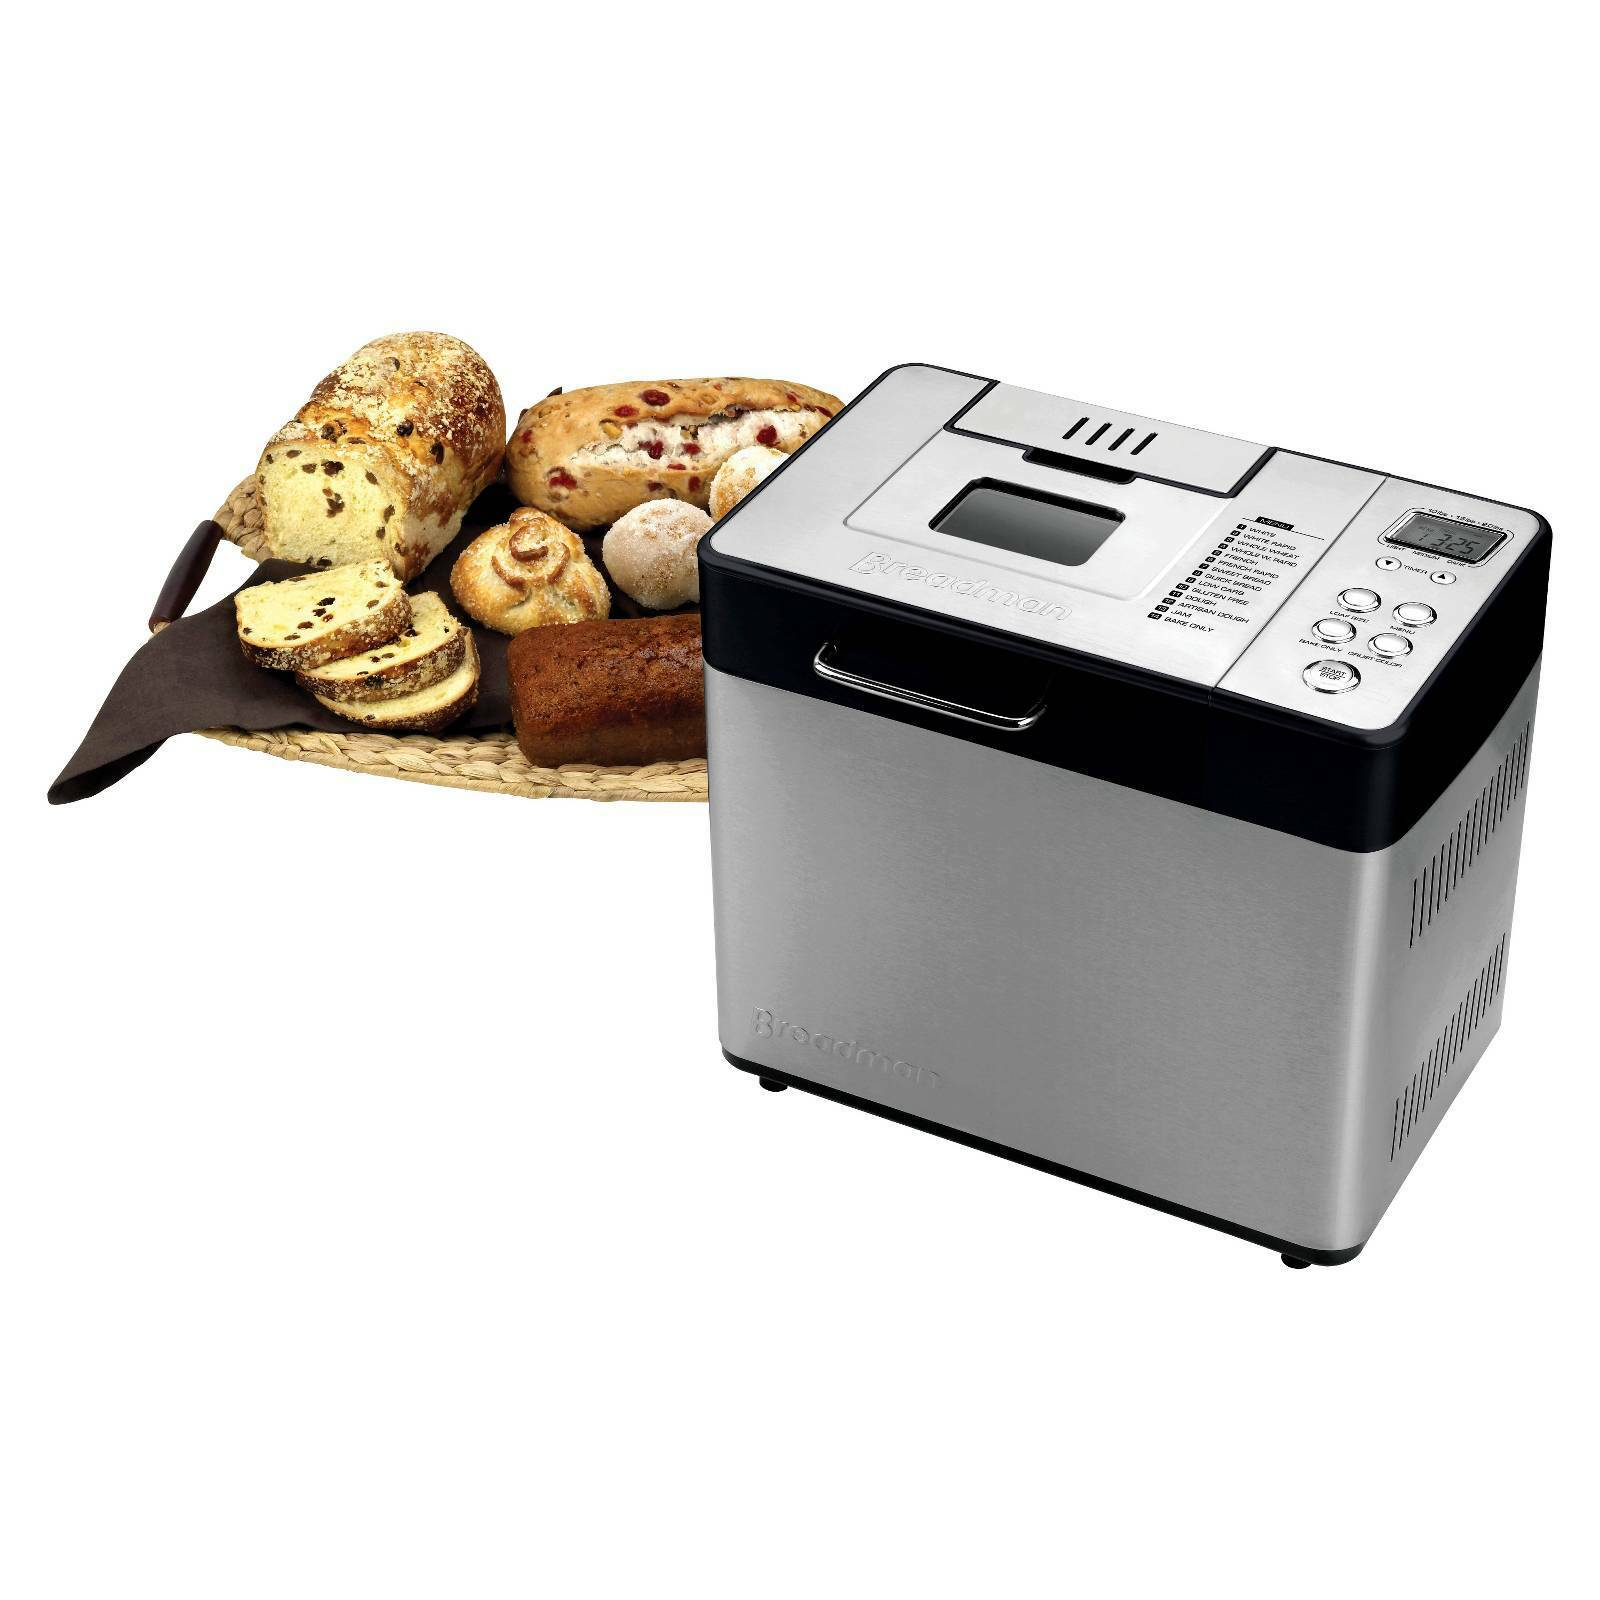 Breadman 2lb Professional Bread Maker with Automatic Fruit and Nut Dispenser 2